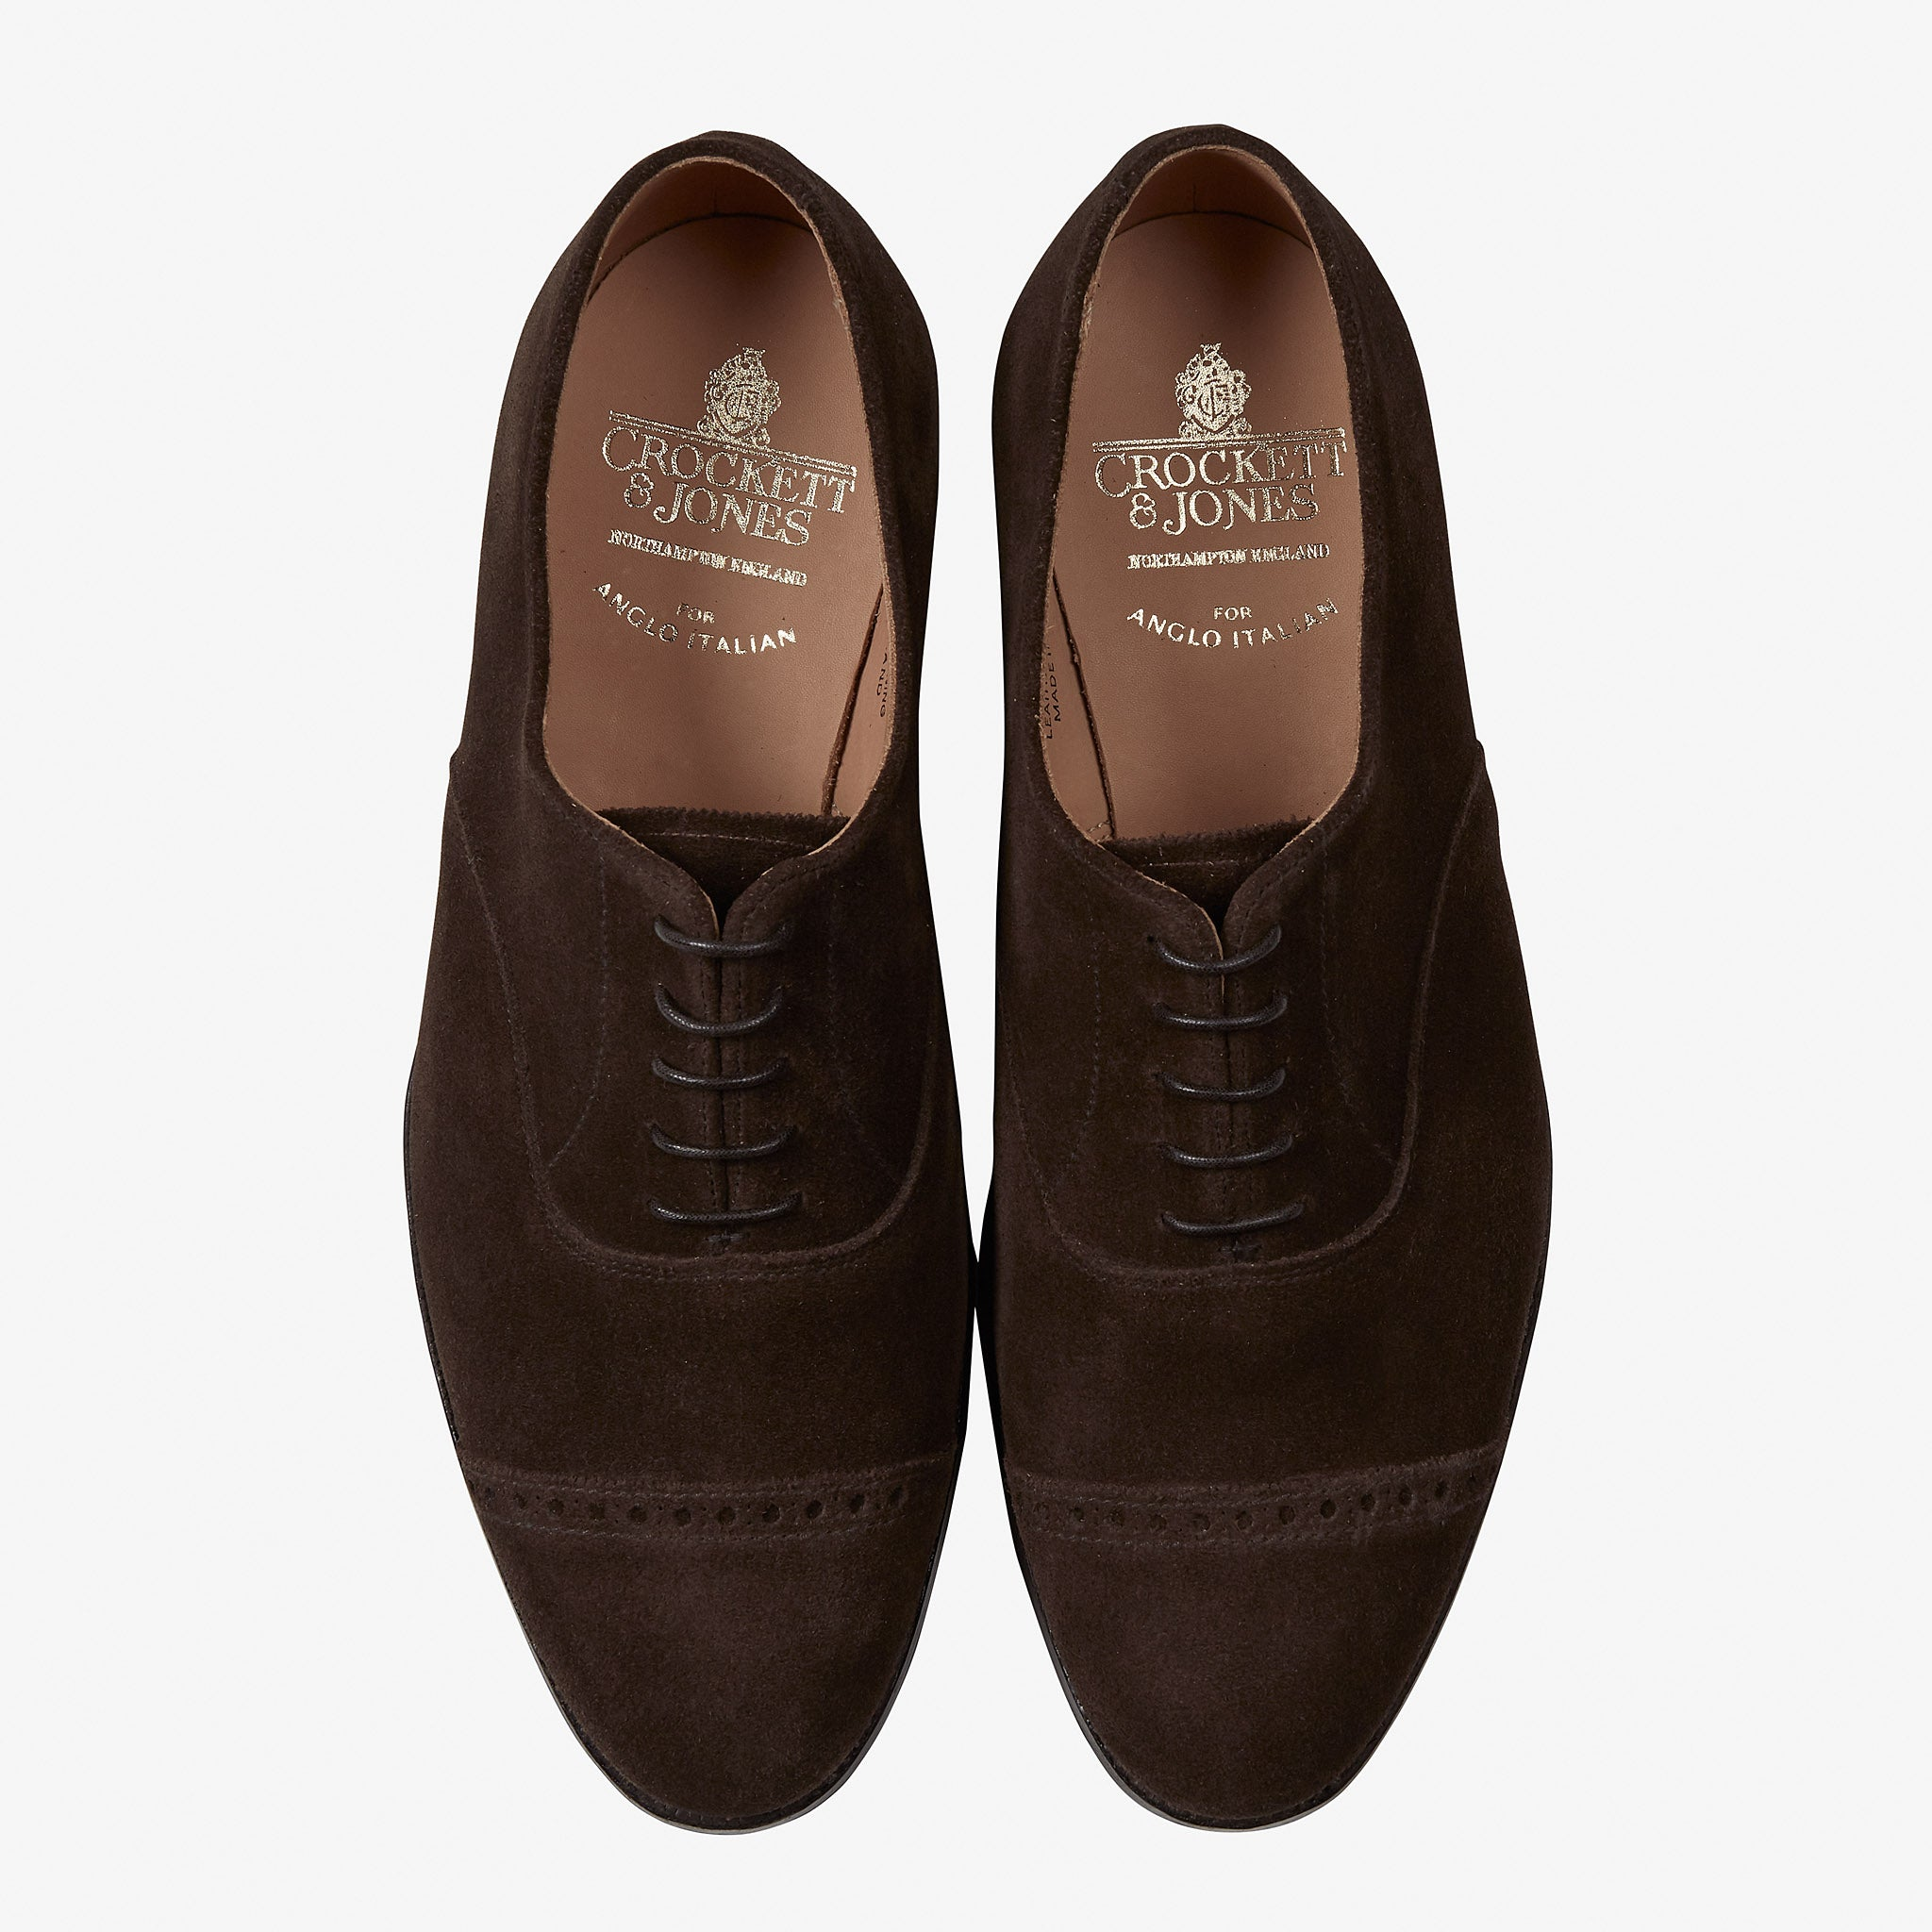 Crockett & Jones for Anglo Italian Burlington Oxford Dark Brown Suede